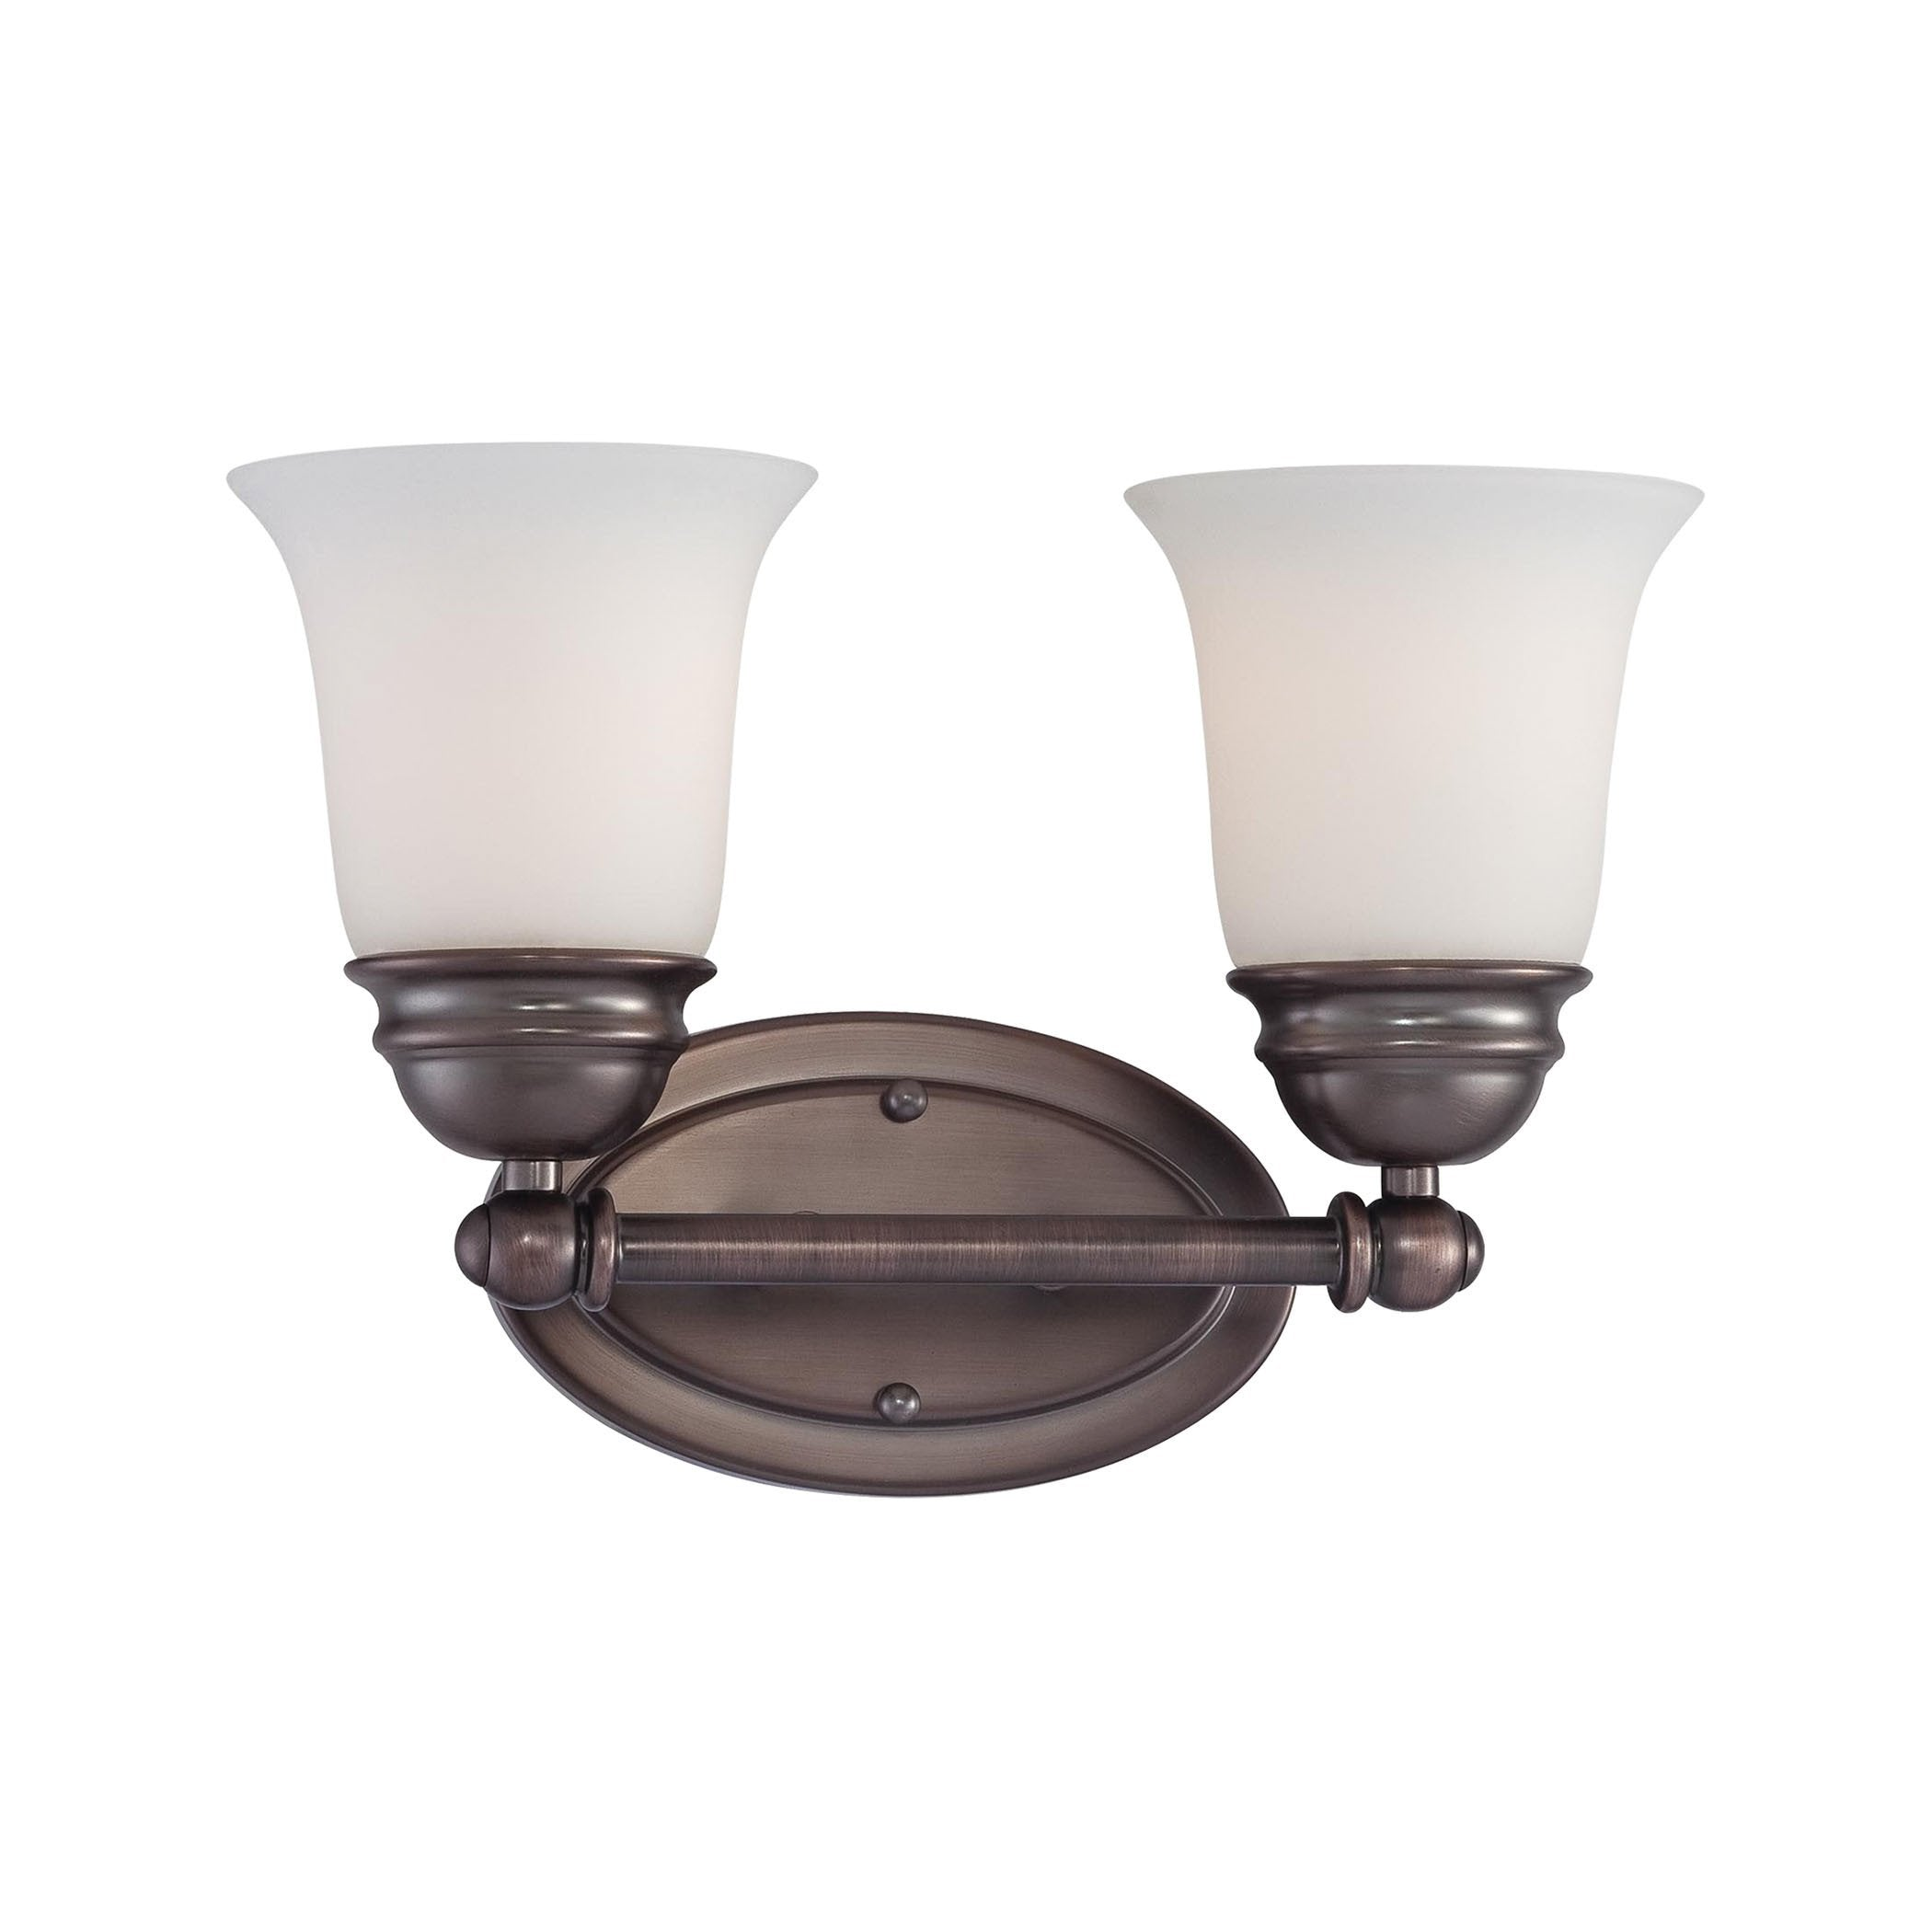 Thomas Lighting SL714215 Bella Collection Oiled Bronze Finish Traditional Wall Sconce